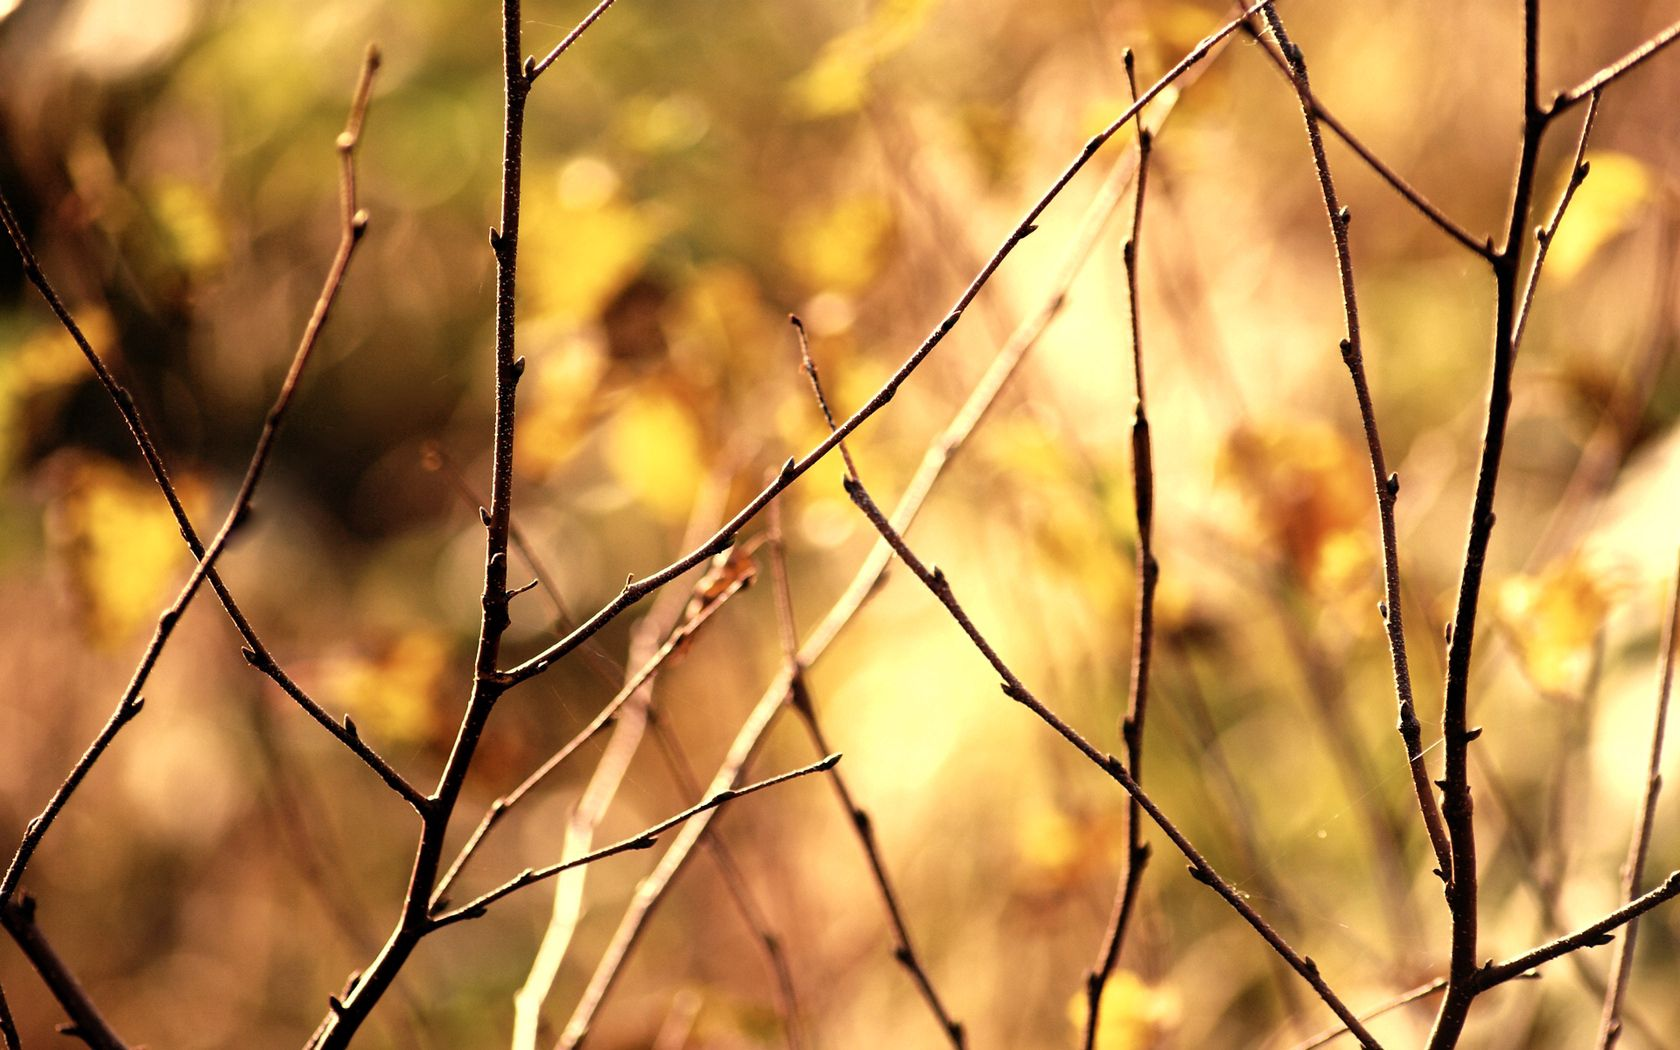 118692 download wallpaper Macro, Branch, Autumn, Background screensavers and pictures for free